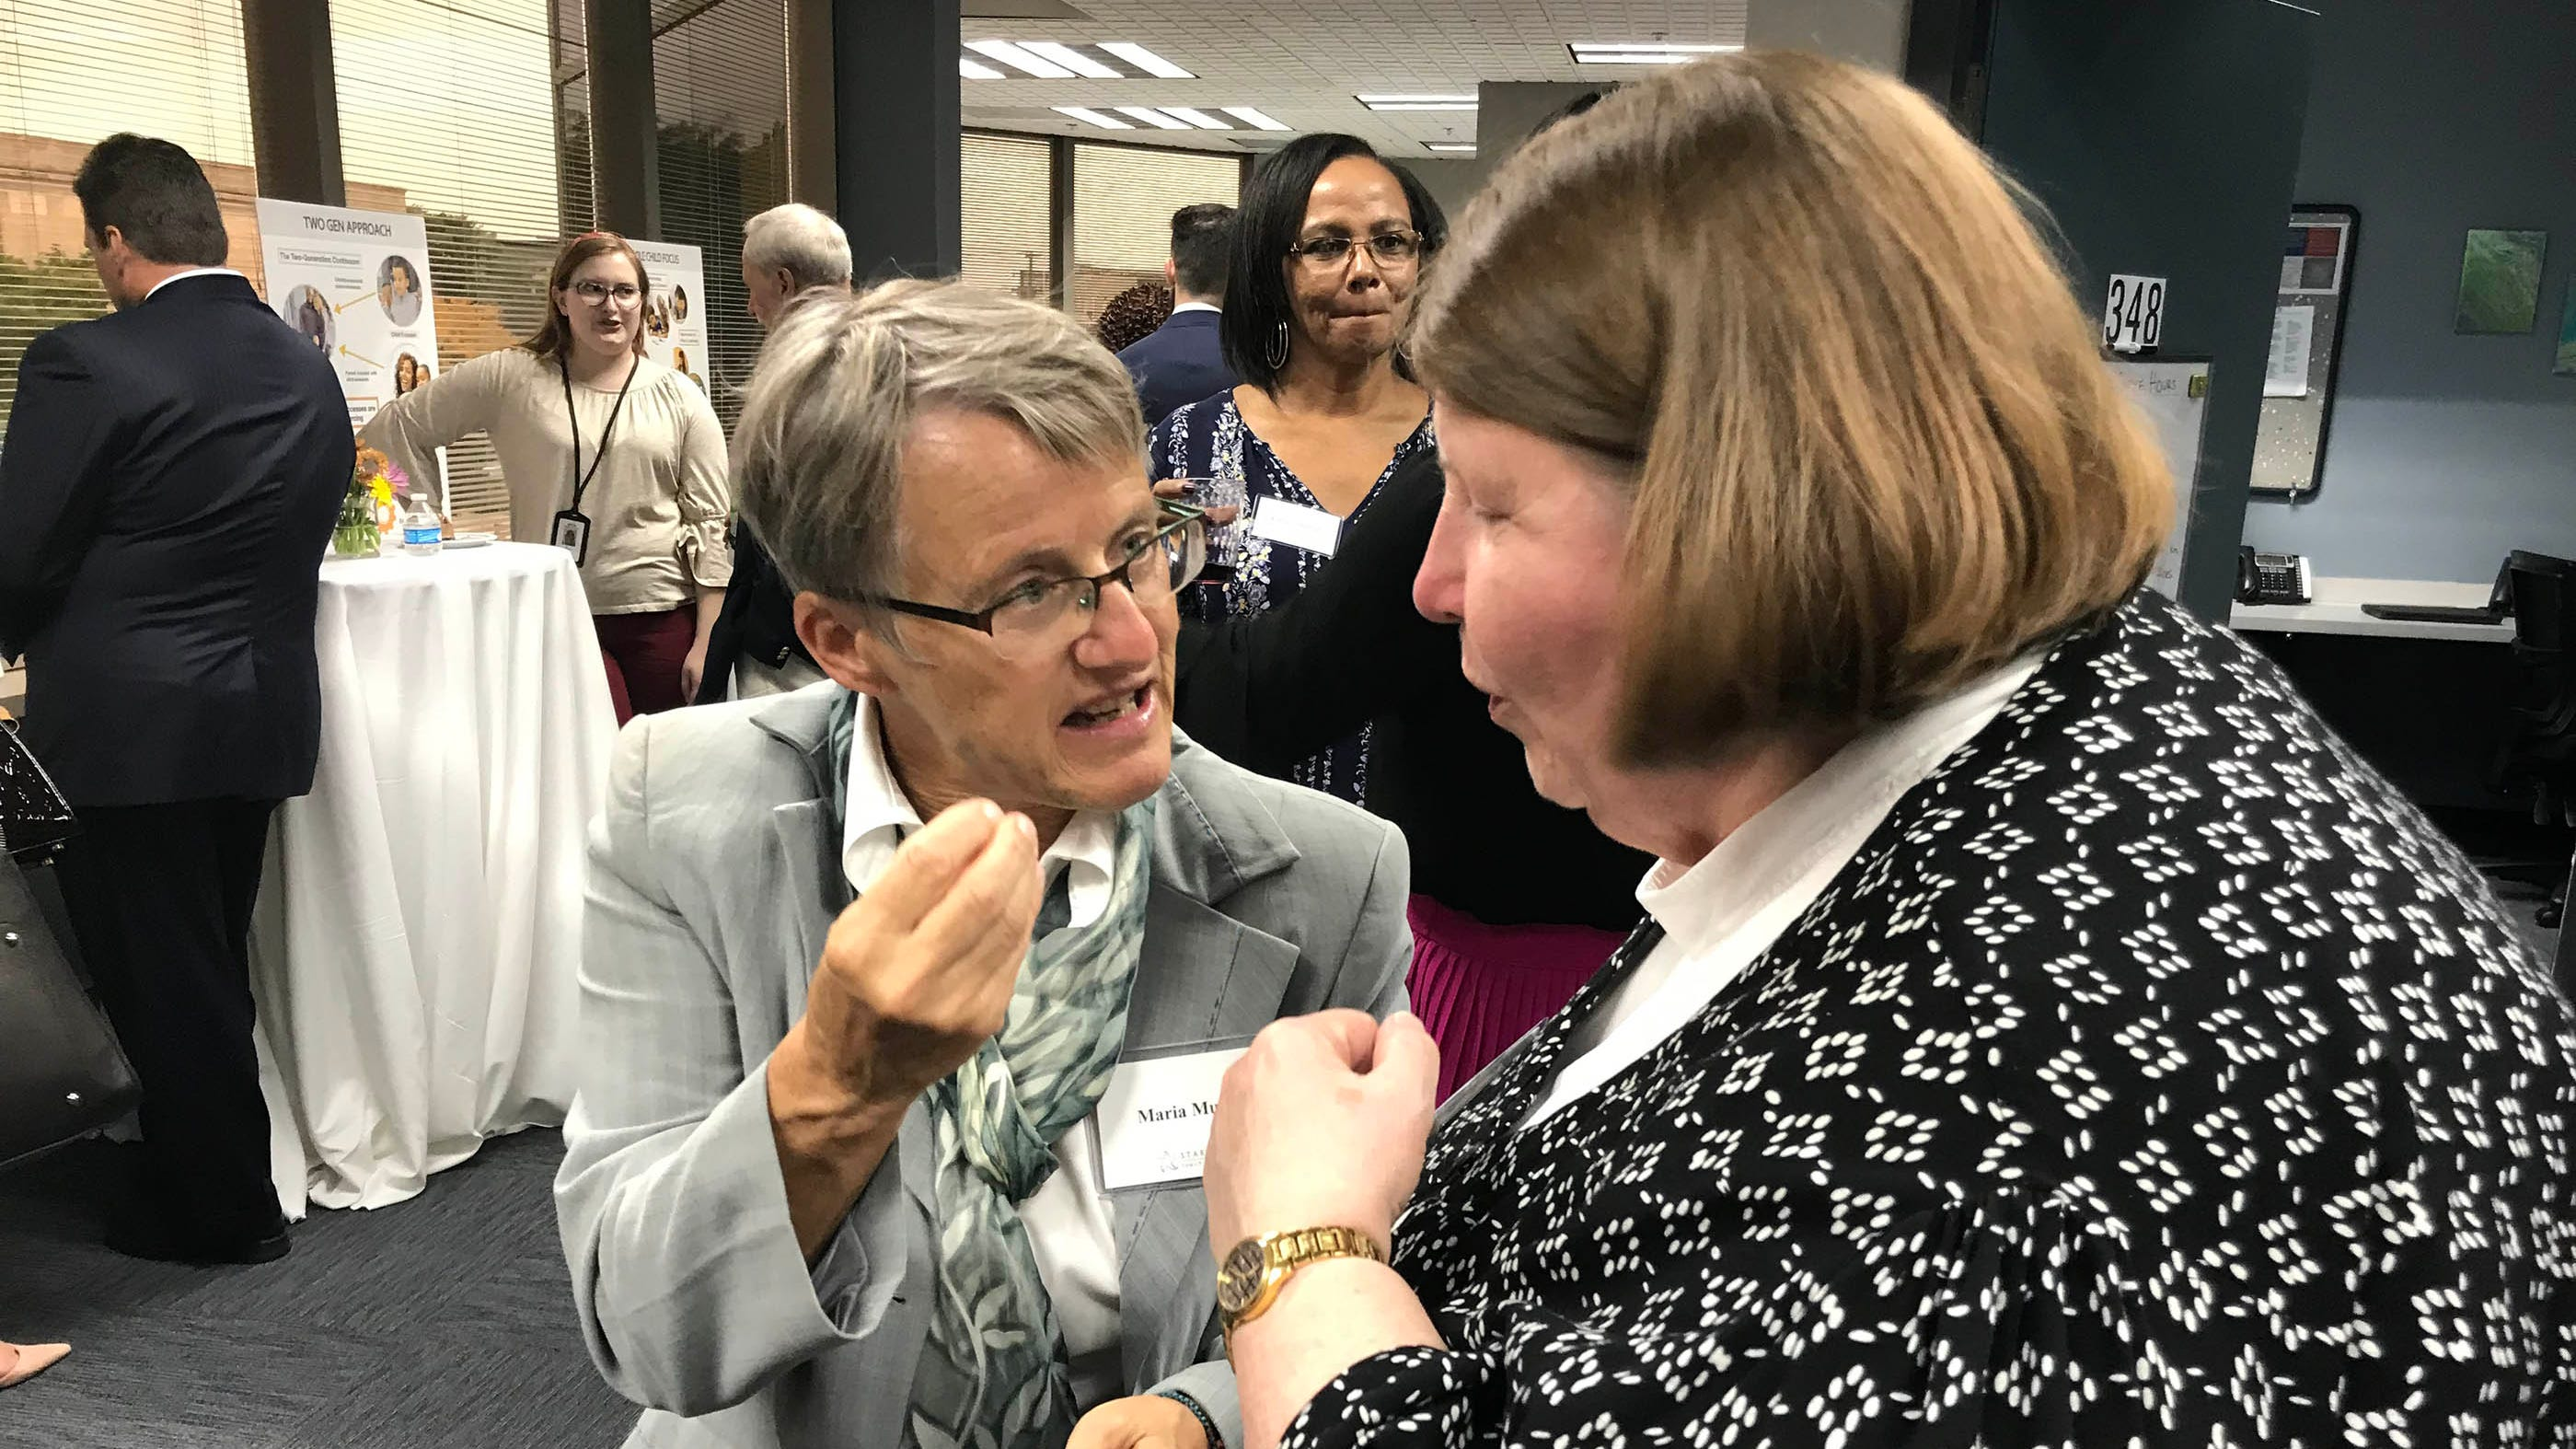 Dr. Maria Muzik, an Associate Professor in the University of Michigan's Department of Psychiatry, left, chats with Mary Ludtke from the Michigan Department of Health and Human Services Wednesday, Oct. 10, 2018 at the opening of the new Starfish Partnering with Parents Center in Dearborn.